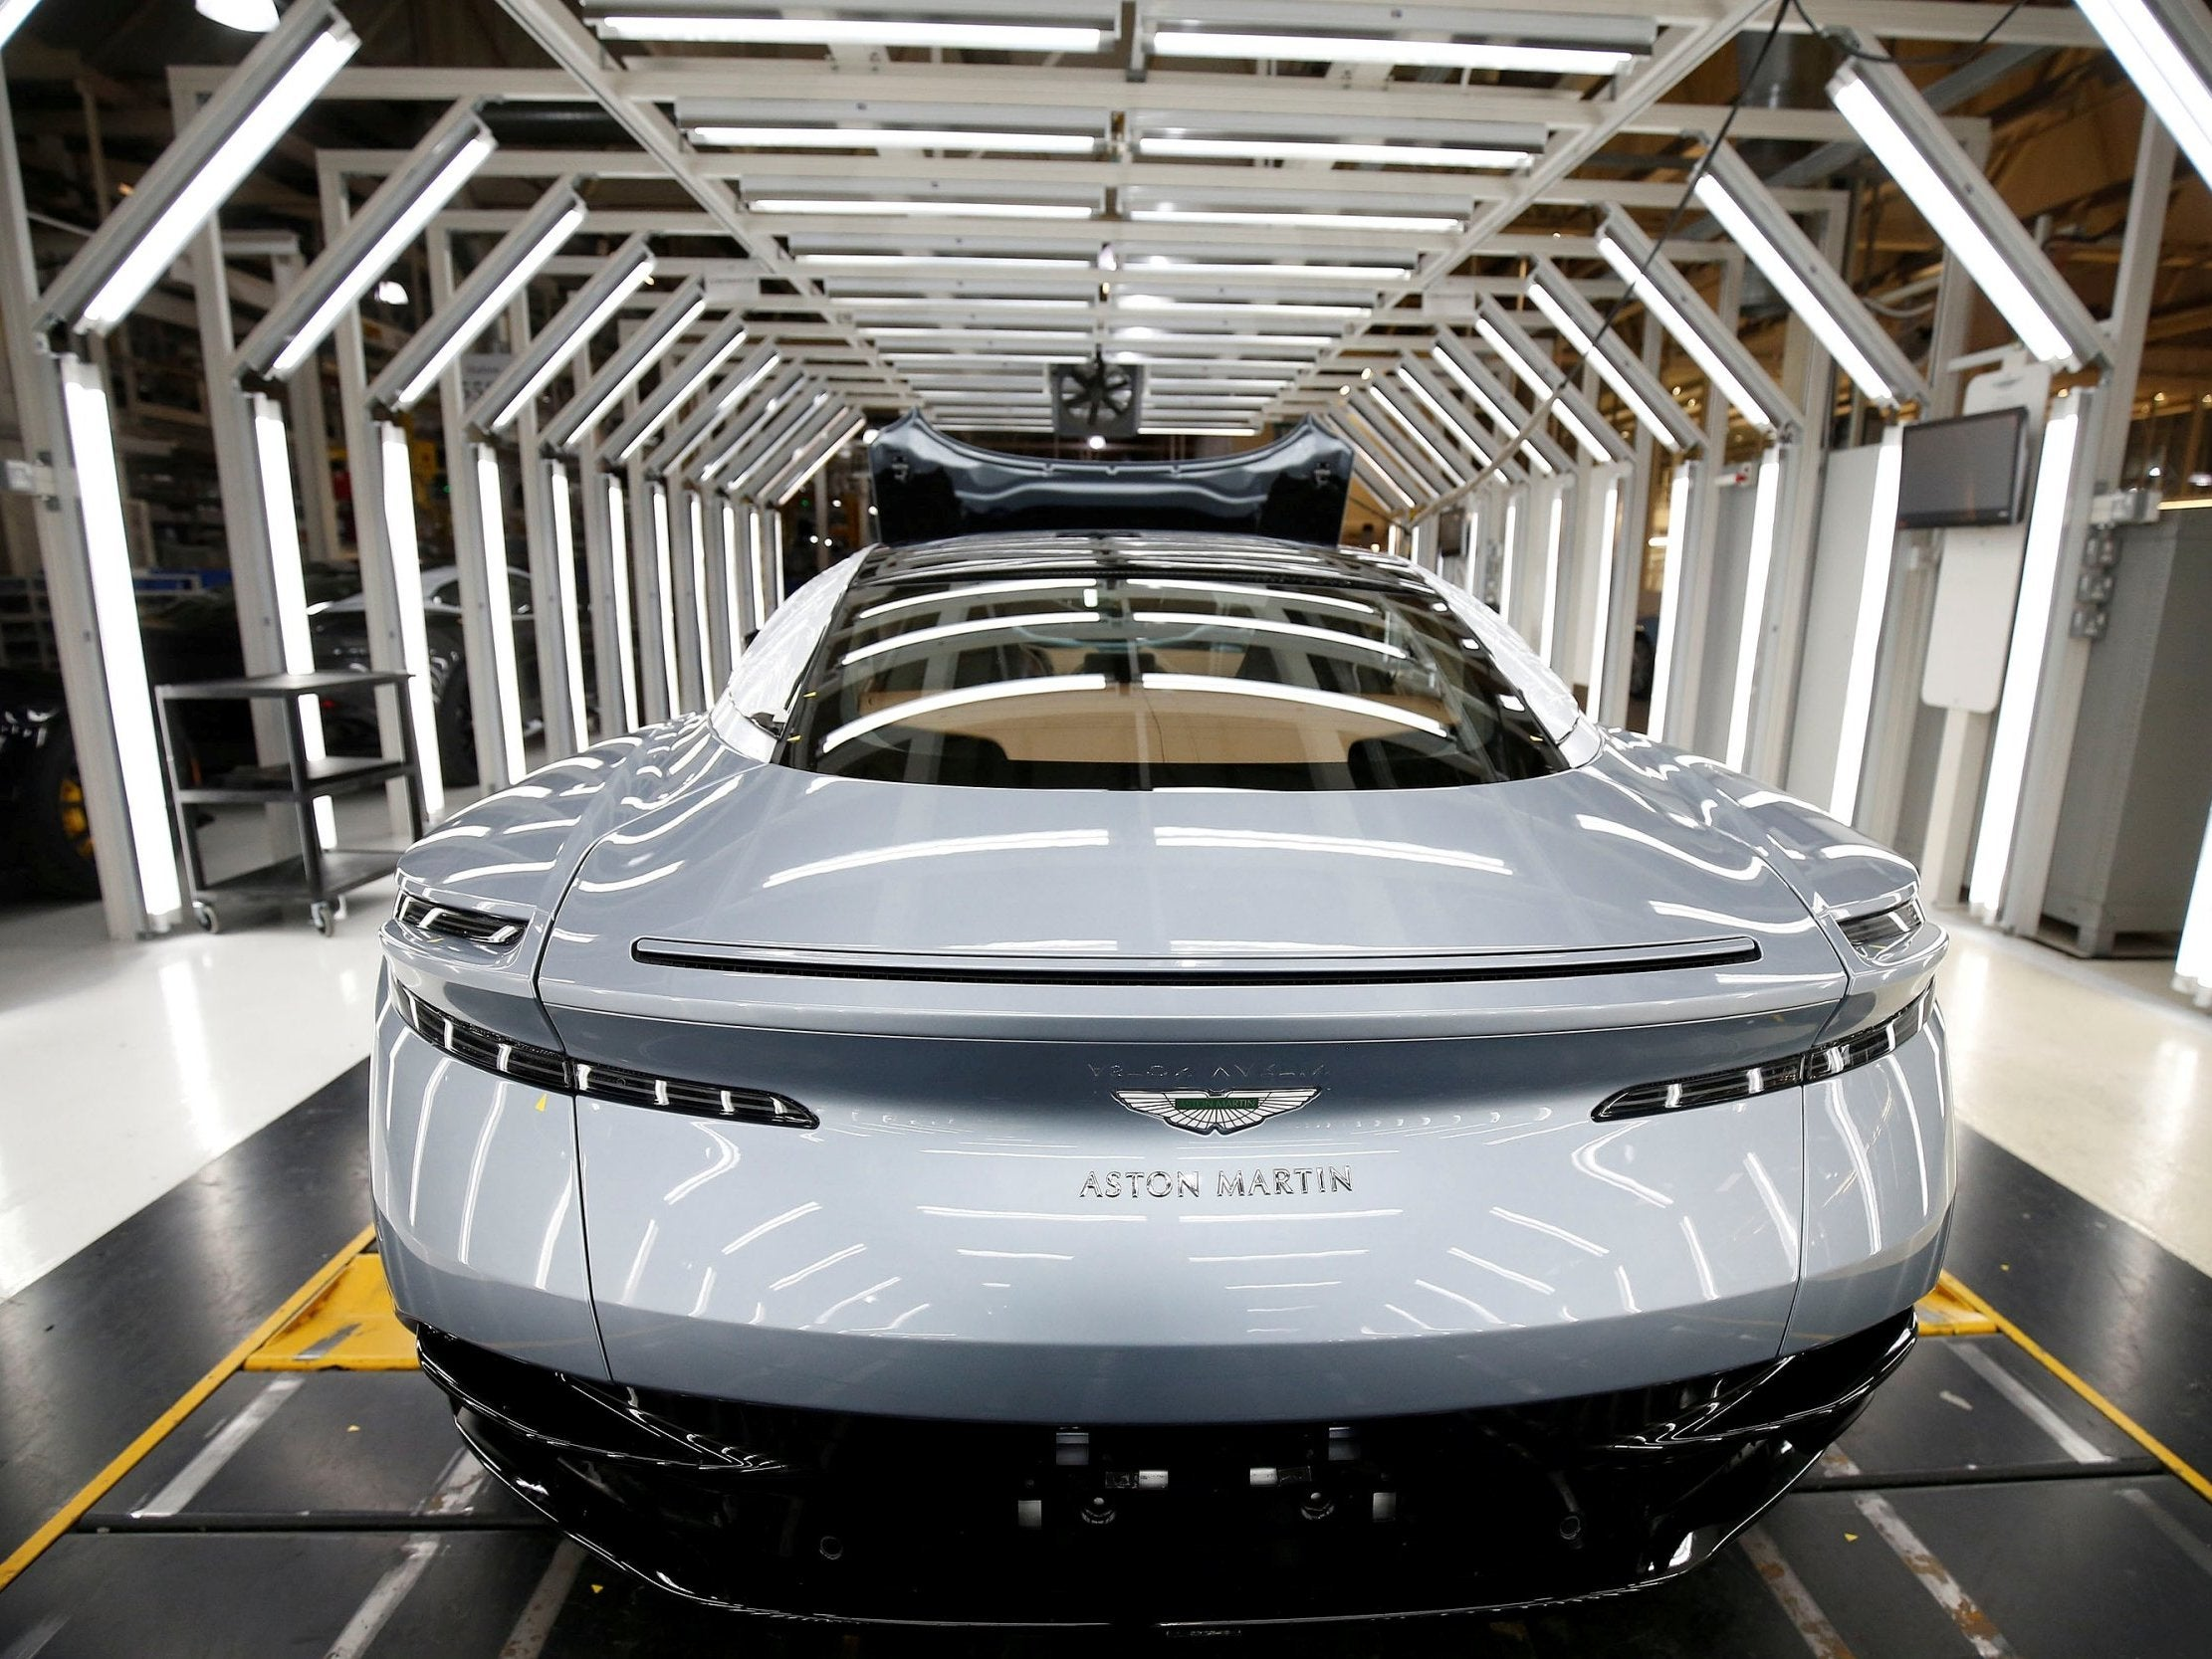 Brexit Aston Martin Says Luxury Cars To Get Cheaper If Uk Crashes Out With No Deal The Independent The Independent